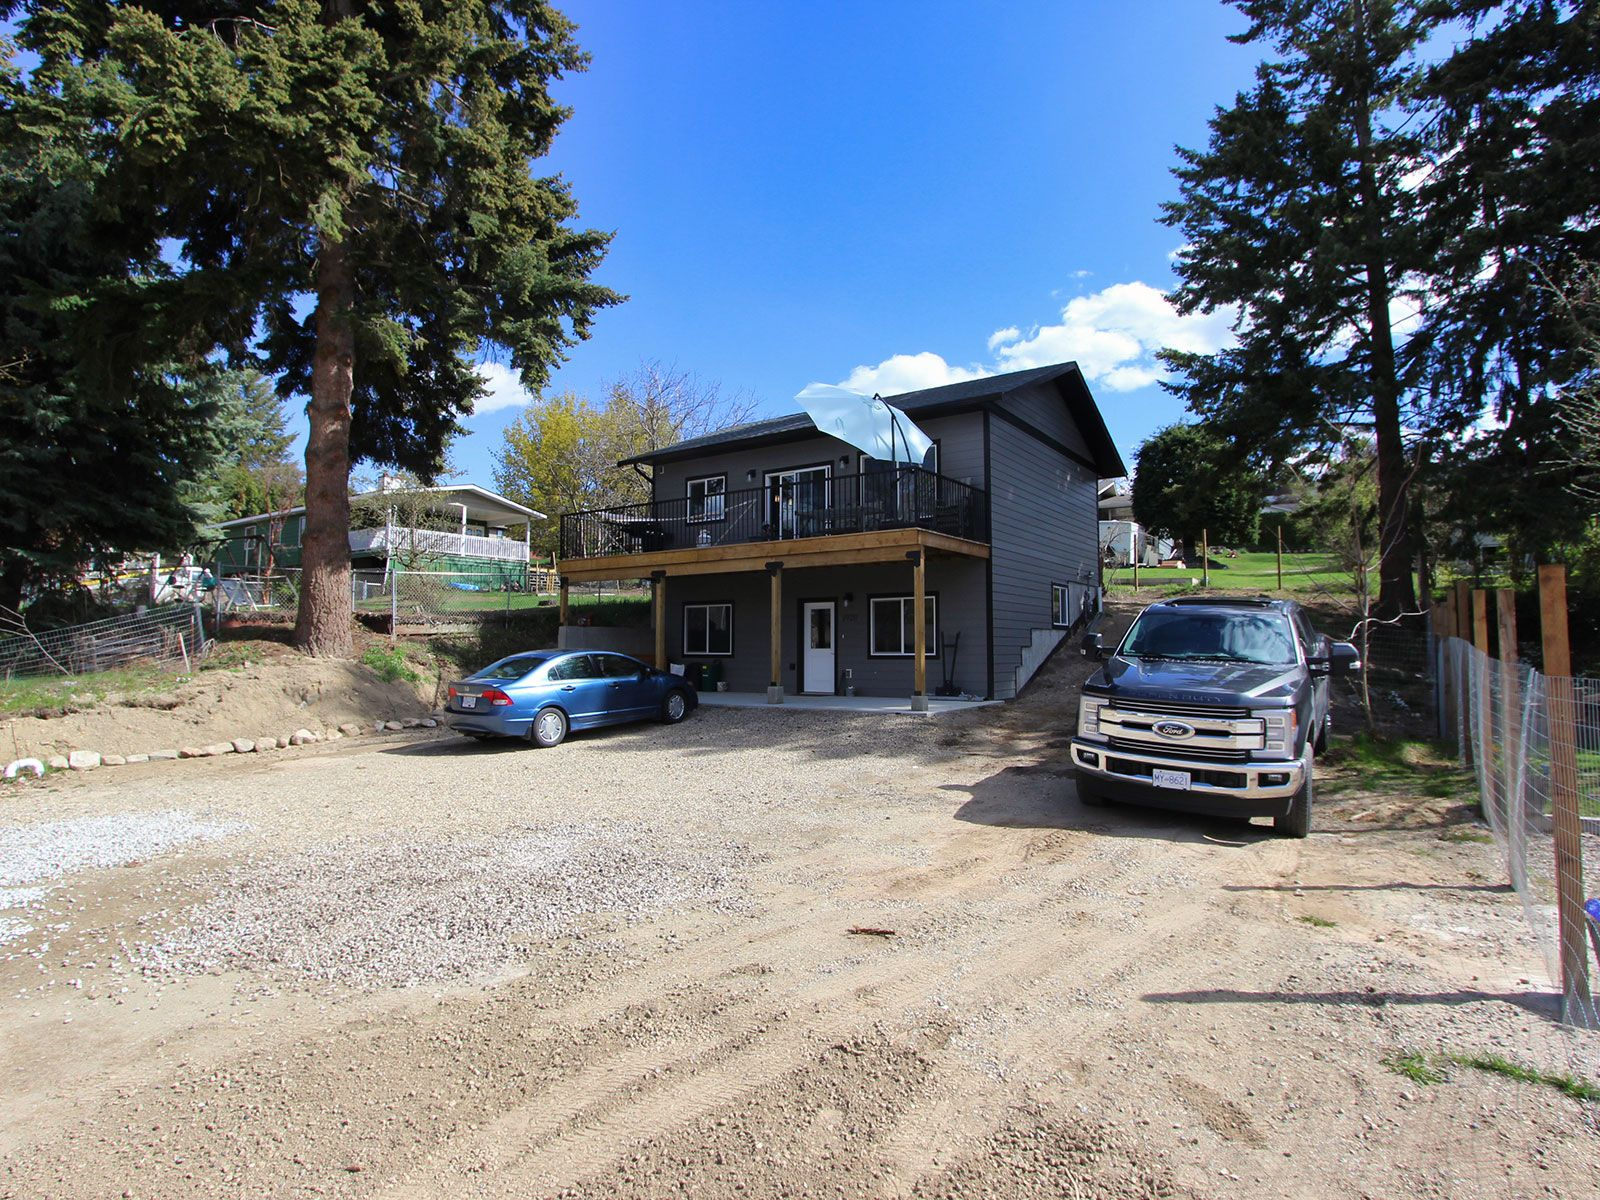 Photo 1: Photos: 1920 SE Okanagan Avenue in Salmon Arm: South East Salmon Arm House for sale : MLS®# 10204567